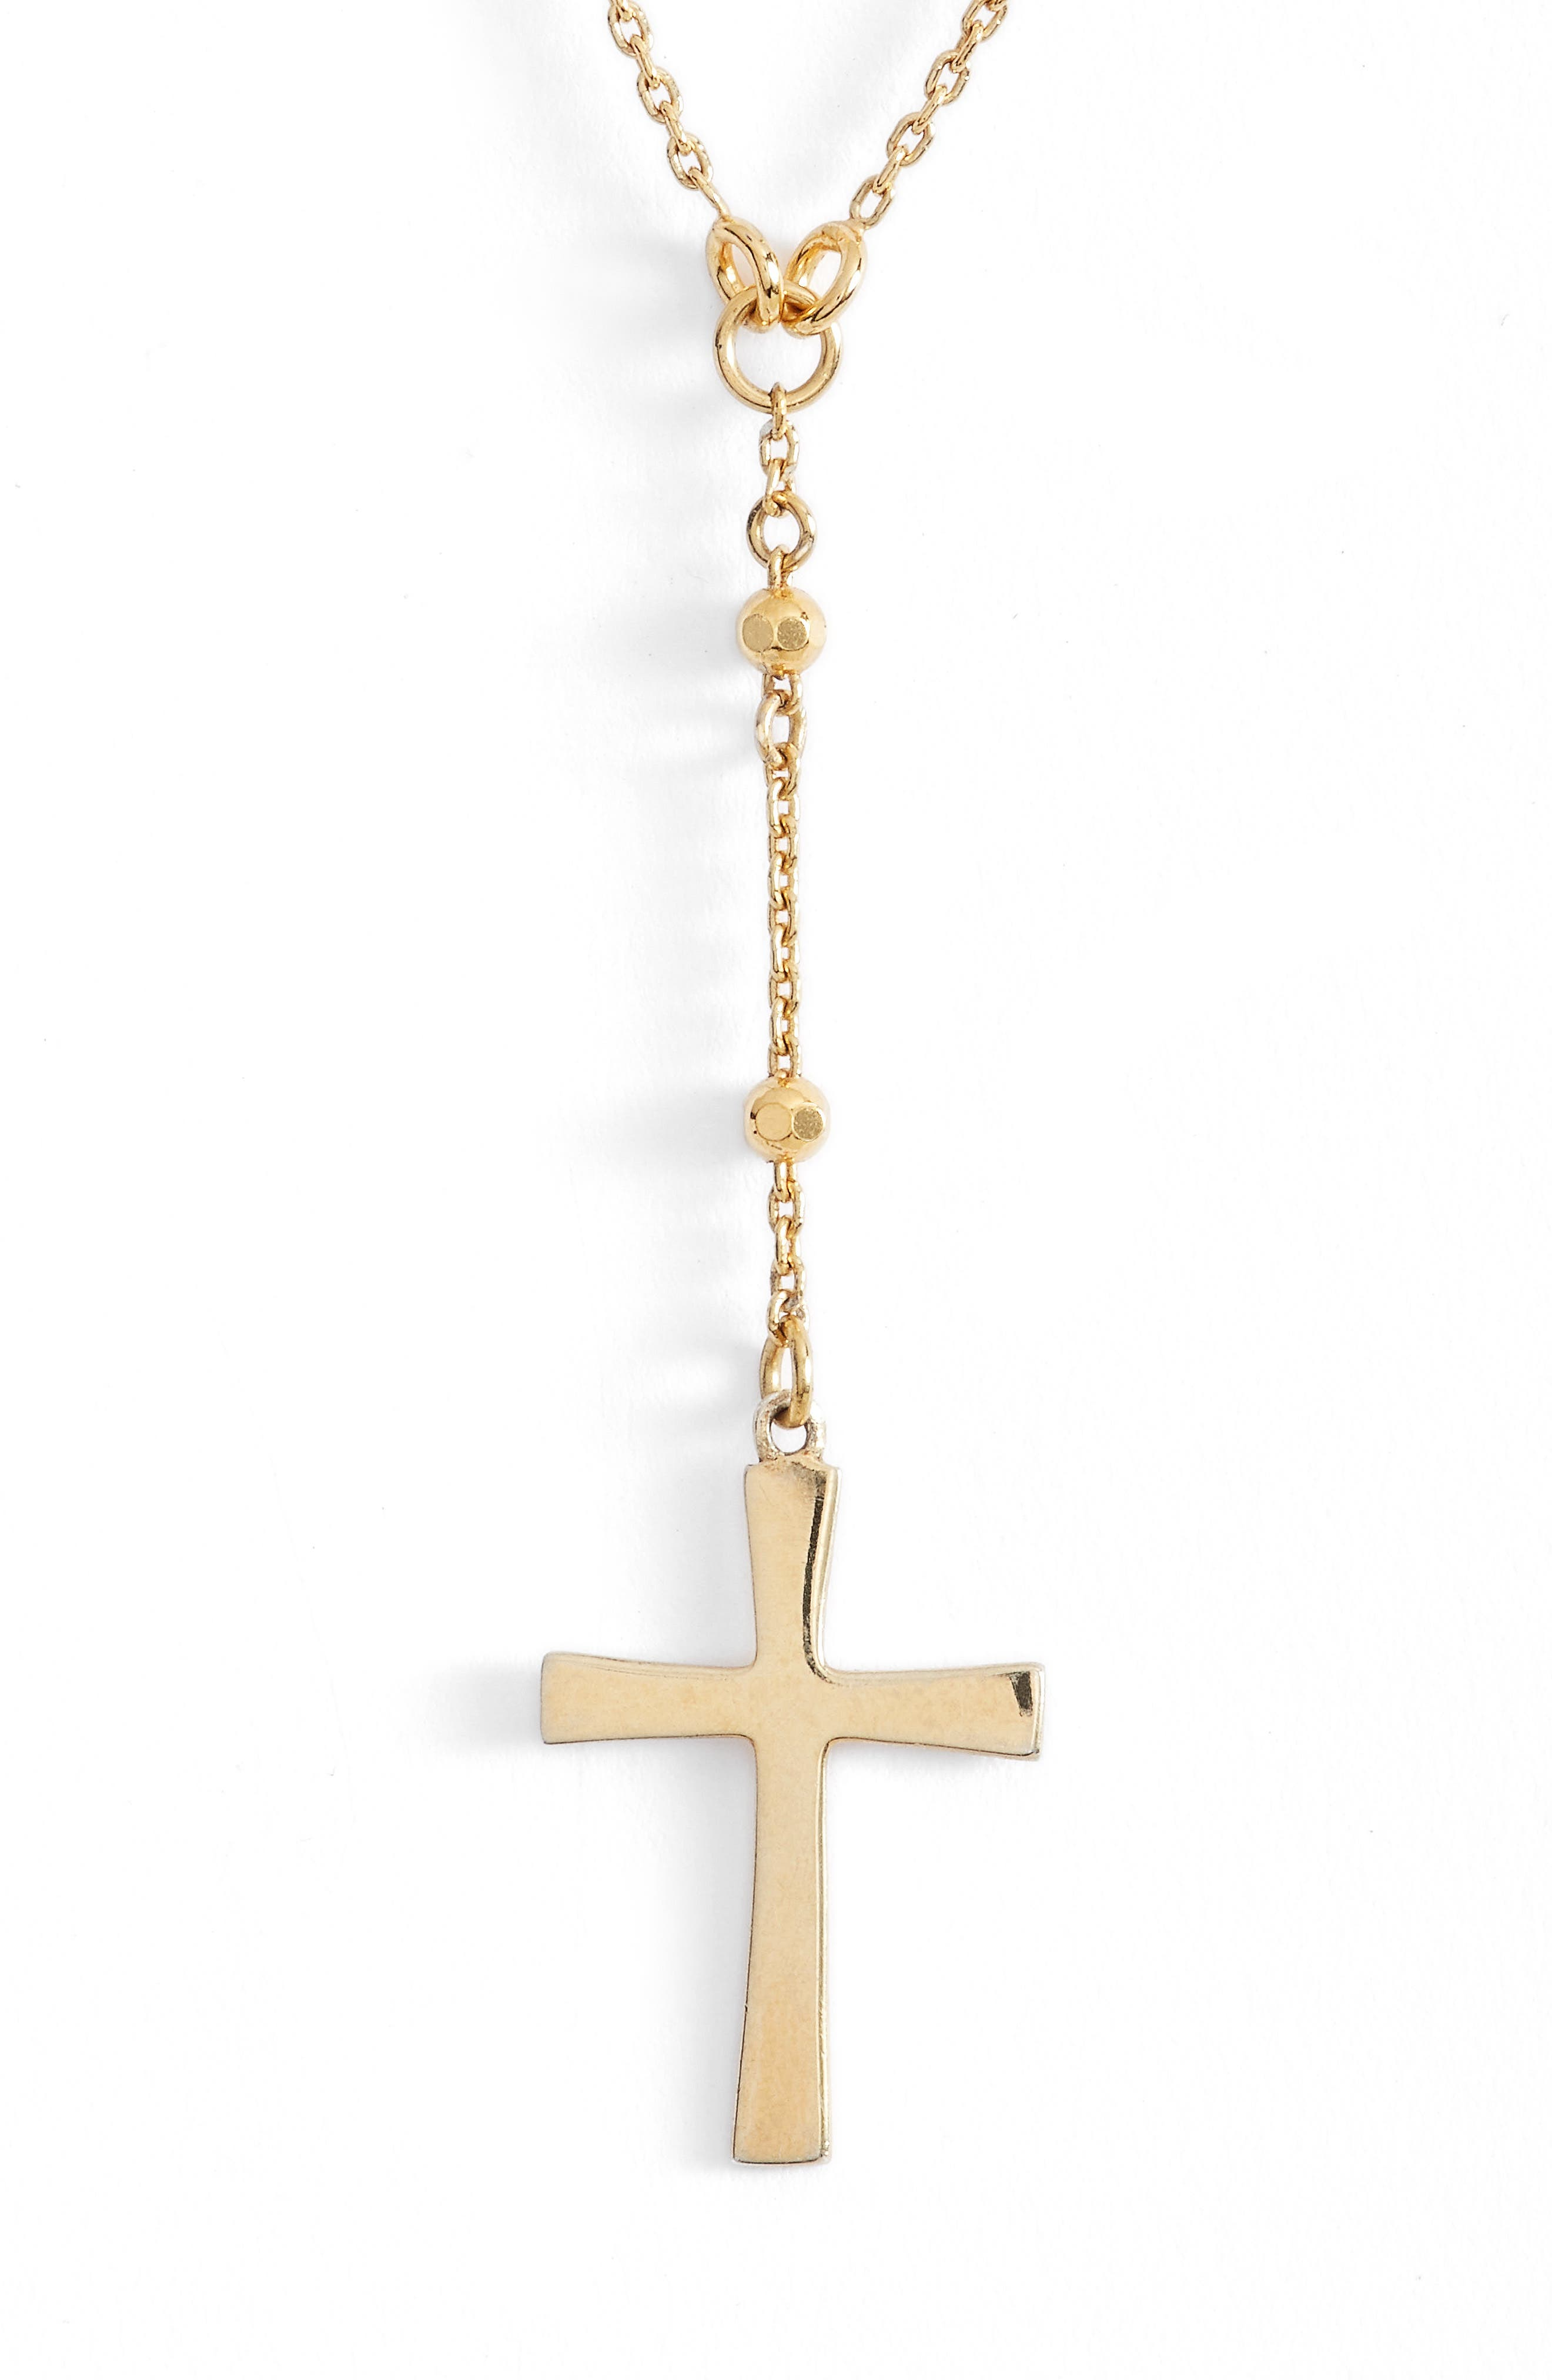 Station Cross Choker Necklace,                             Main thumbnail 1, color,                             Gold